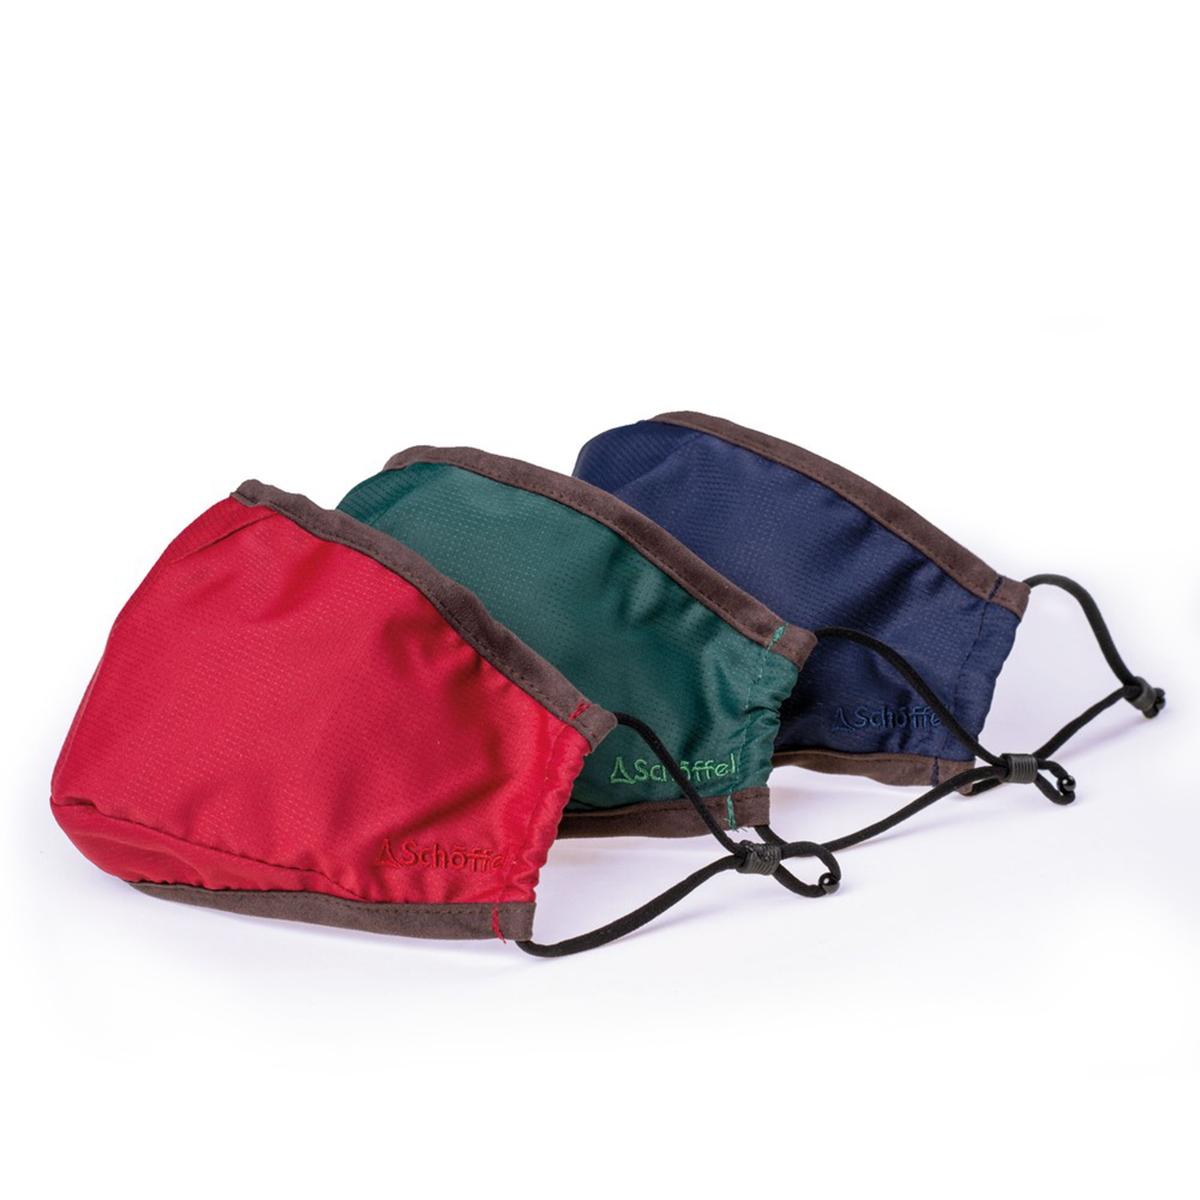 Schoffel Face Covering/ Mask (Pack of Three)